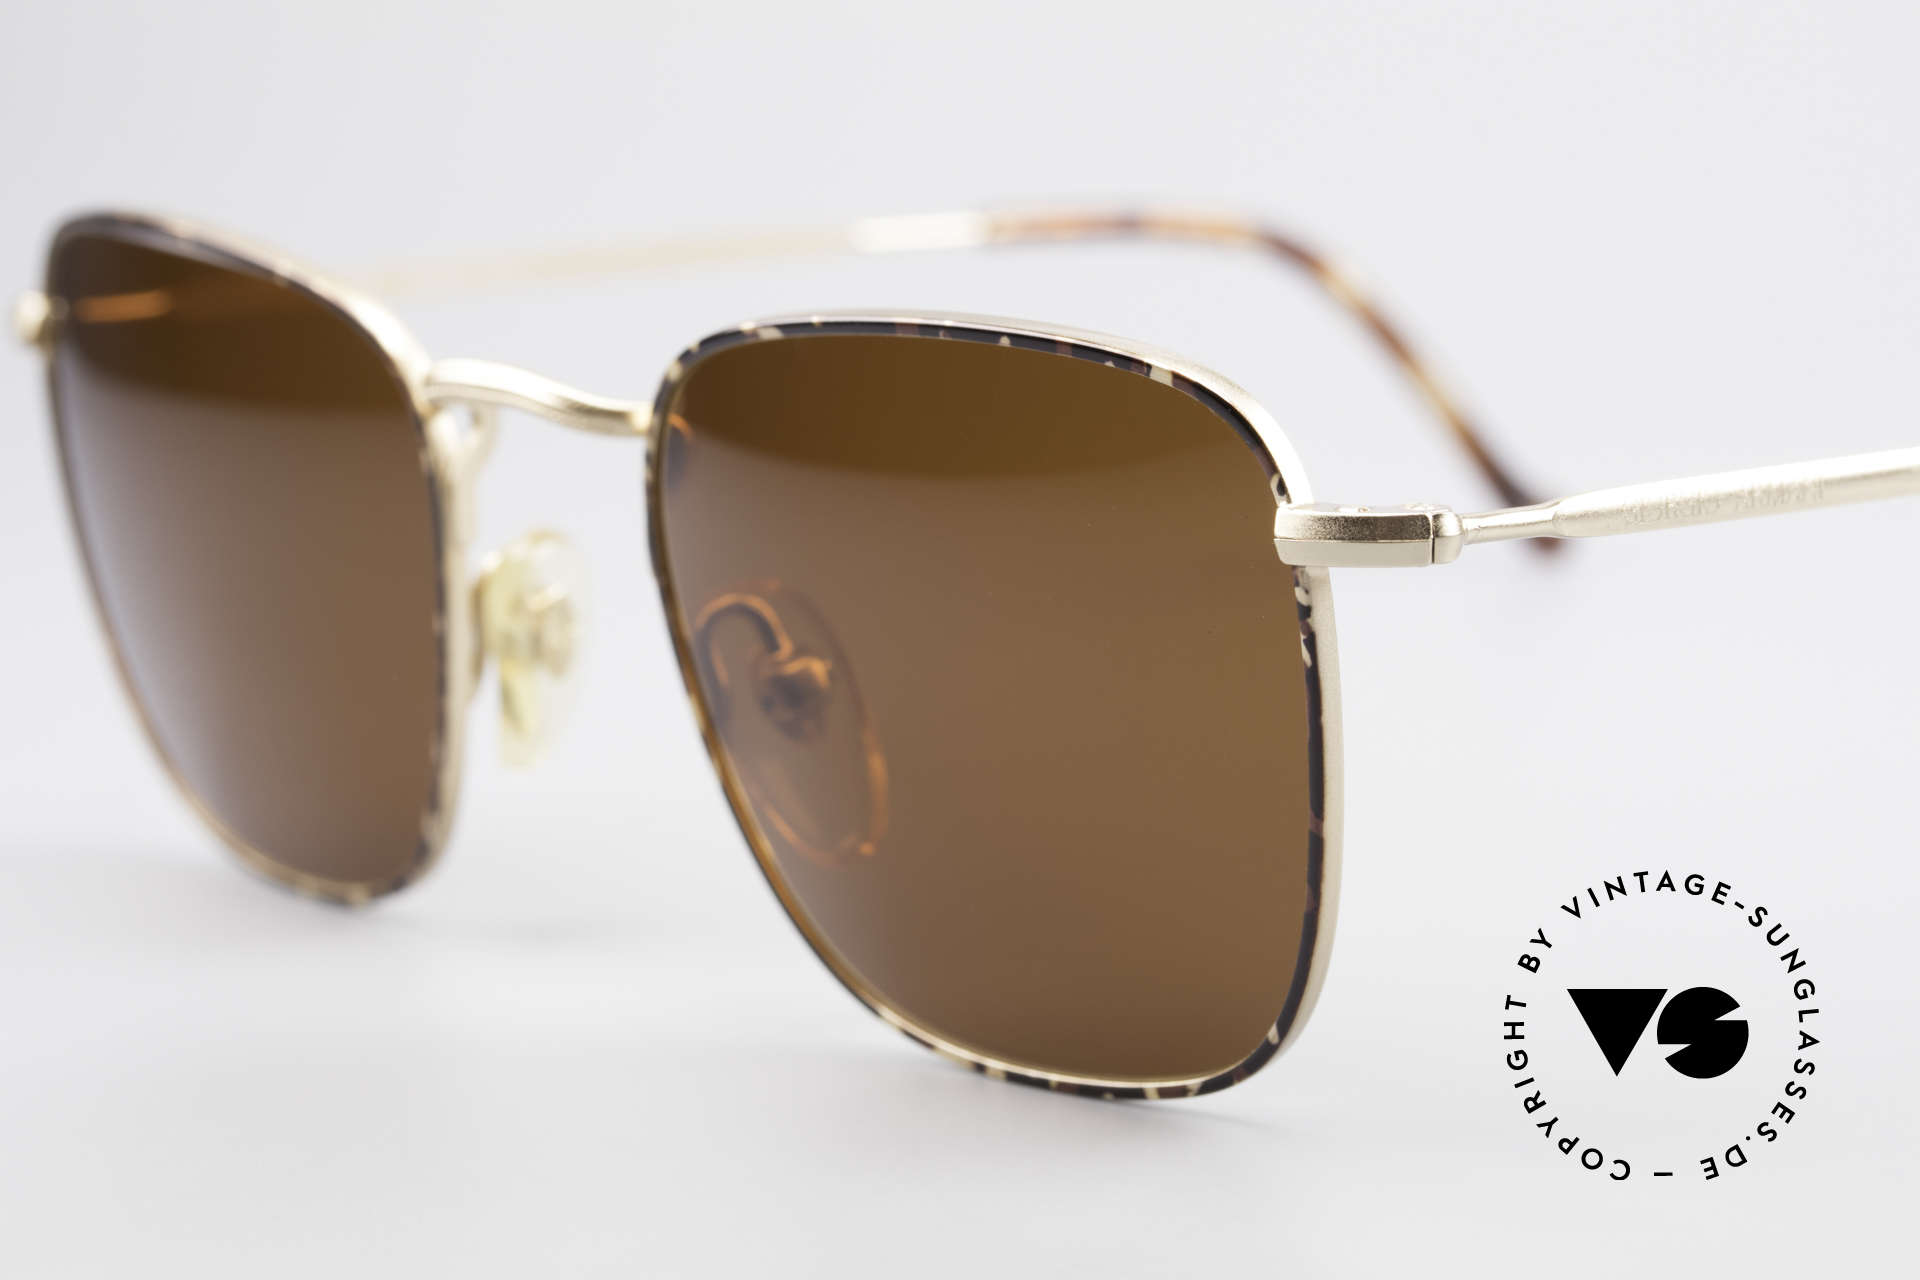 Giorgio Armani 137 Square Panto Vintage Shades, with dark brown sun lenses (for 100% UV protection), Made for Men